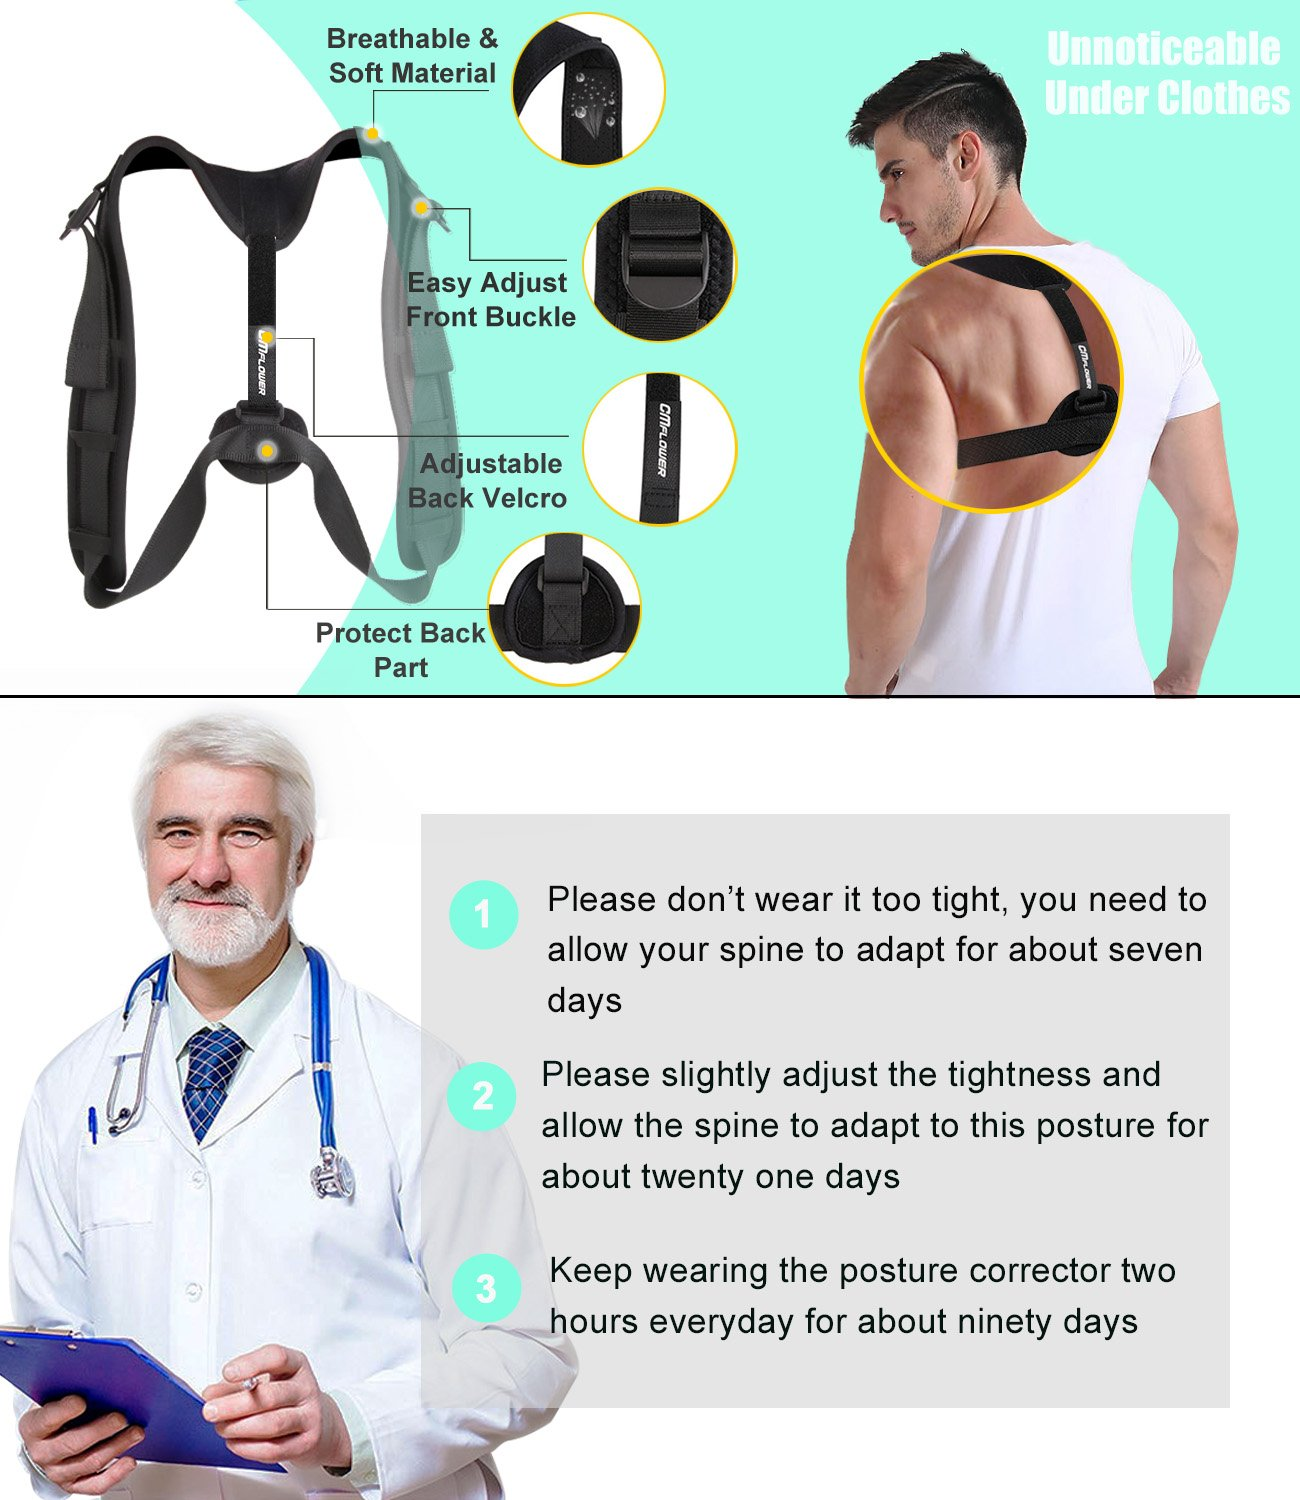 CMflower Posture Corrector 2018 New Easy Adjust Buckle Design Unnoticeable Back Brace with Yoga Strap and Carry Bag Breathable Soft Material for Men Women Kids to Correct Hunching Slouch Bad Posture by CMflower (Image #5)